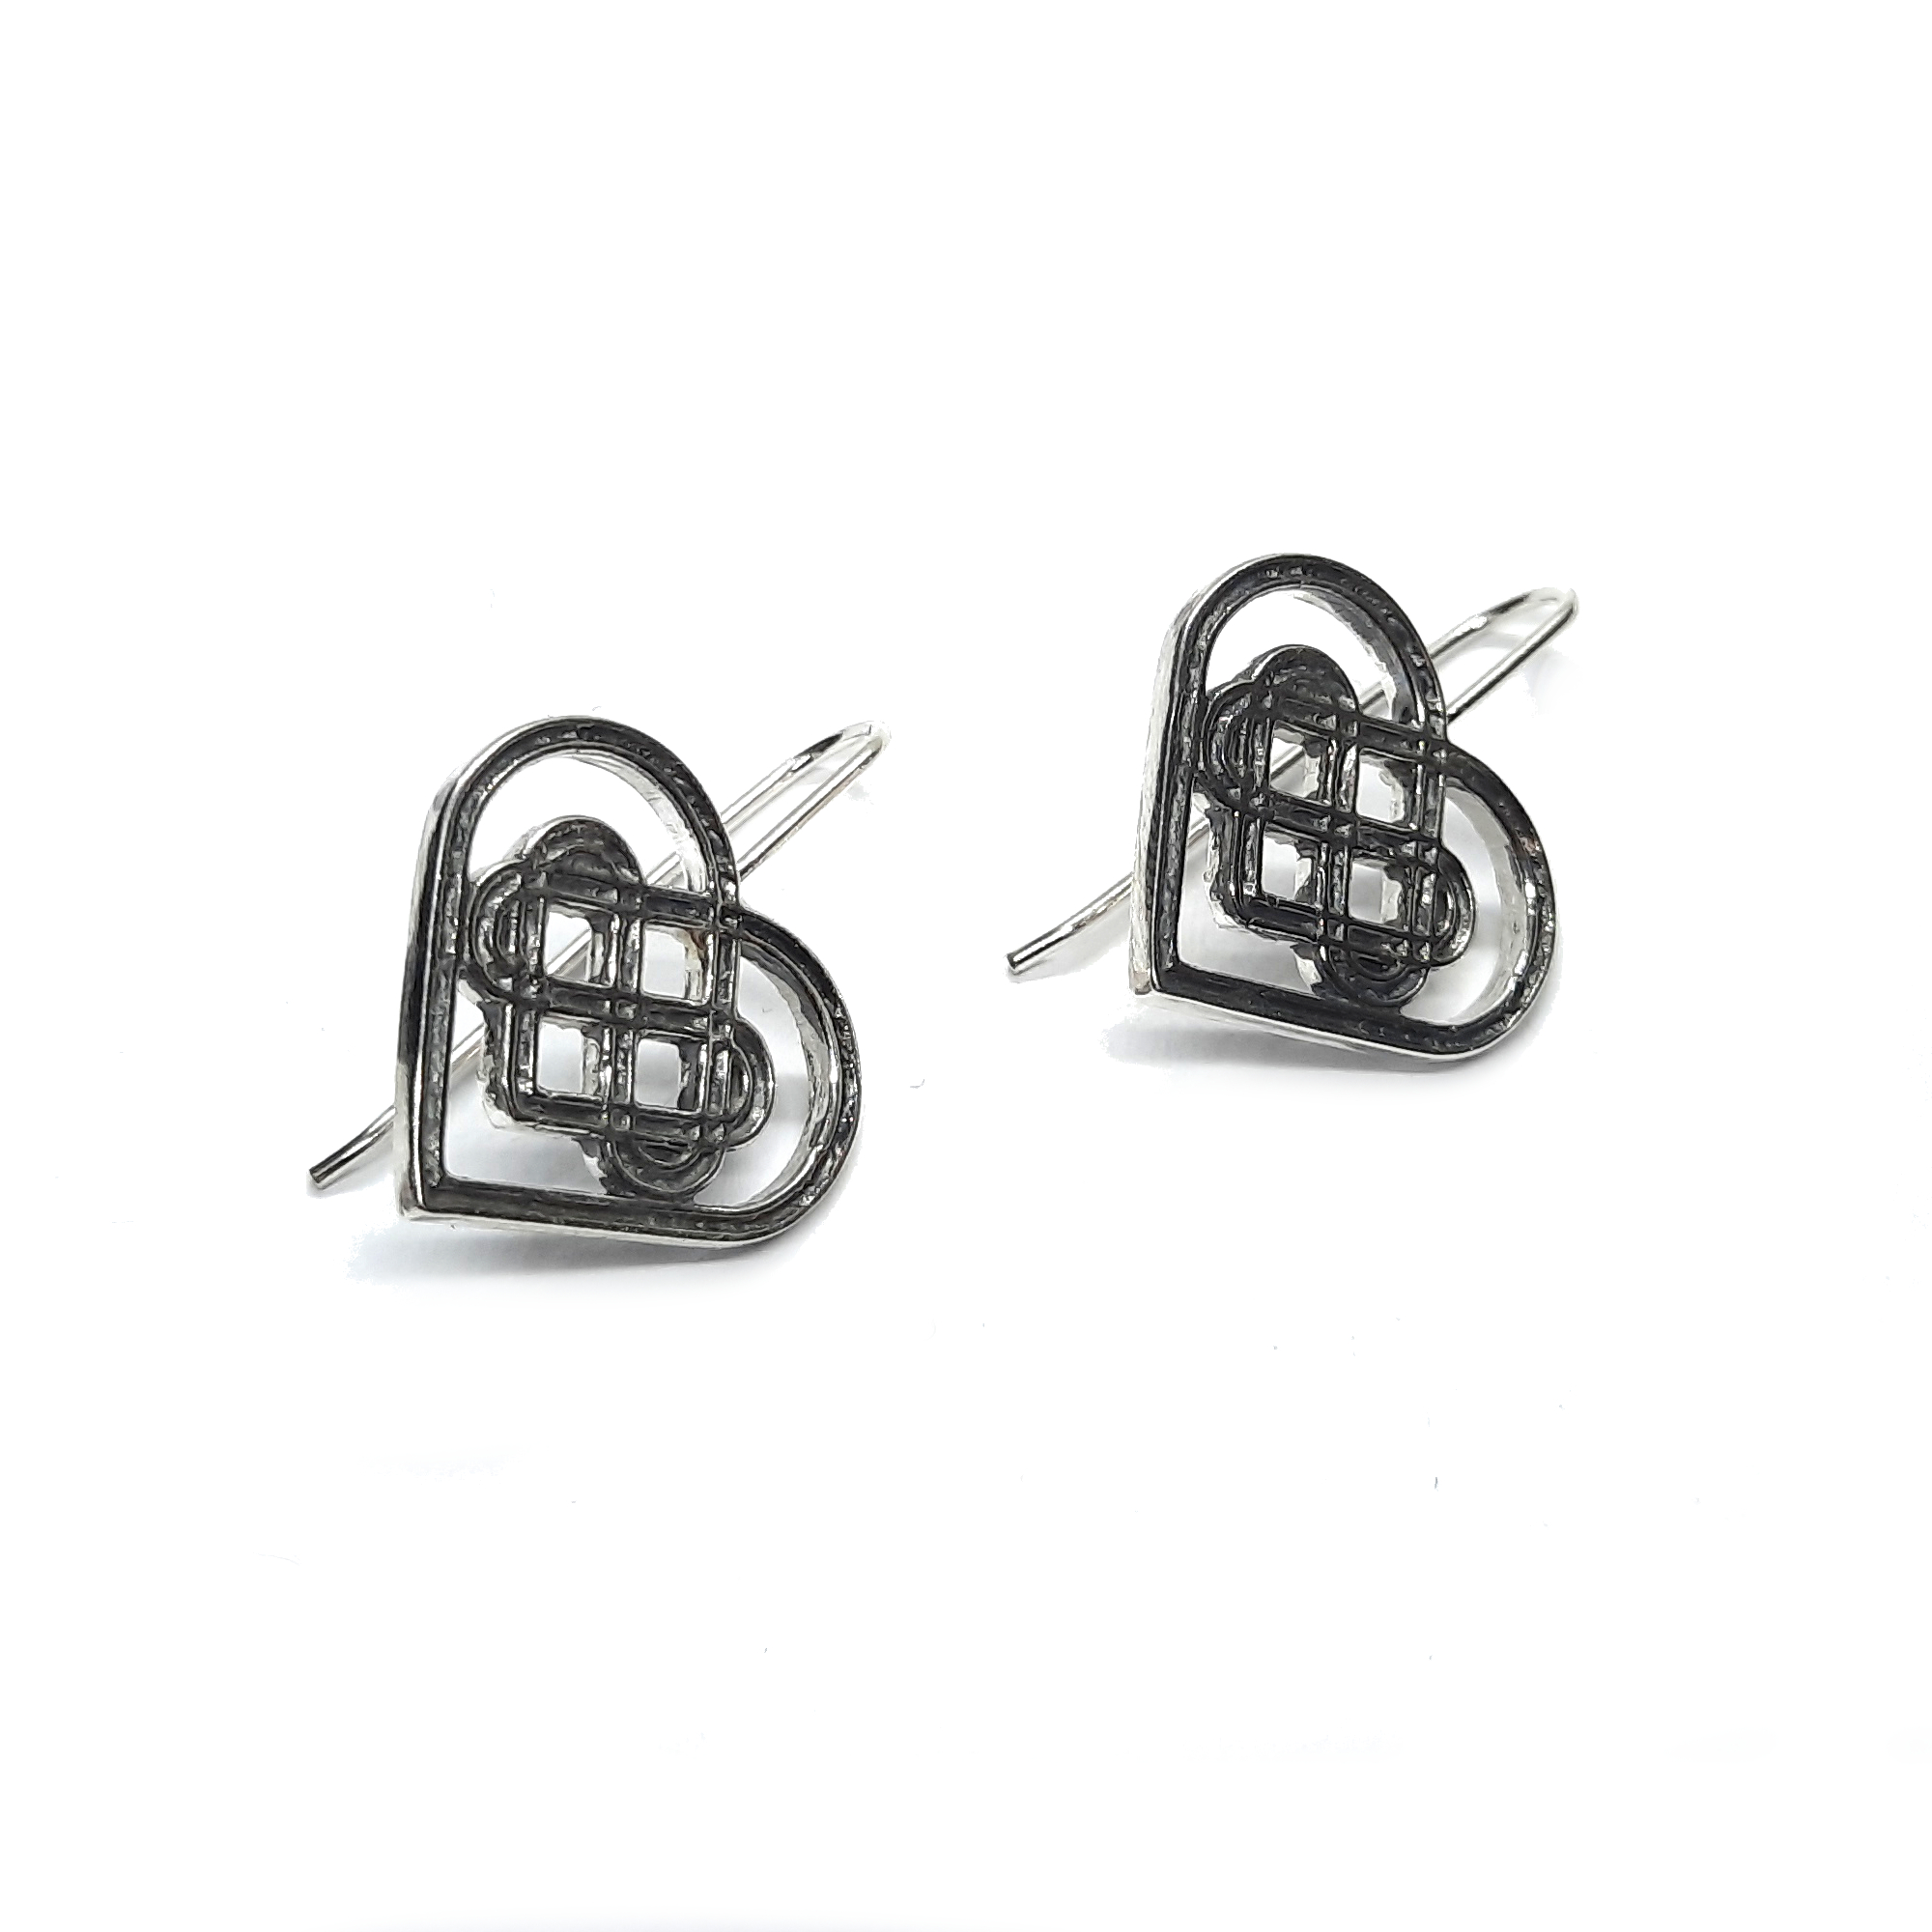 Silver earrings - E000795